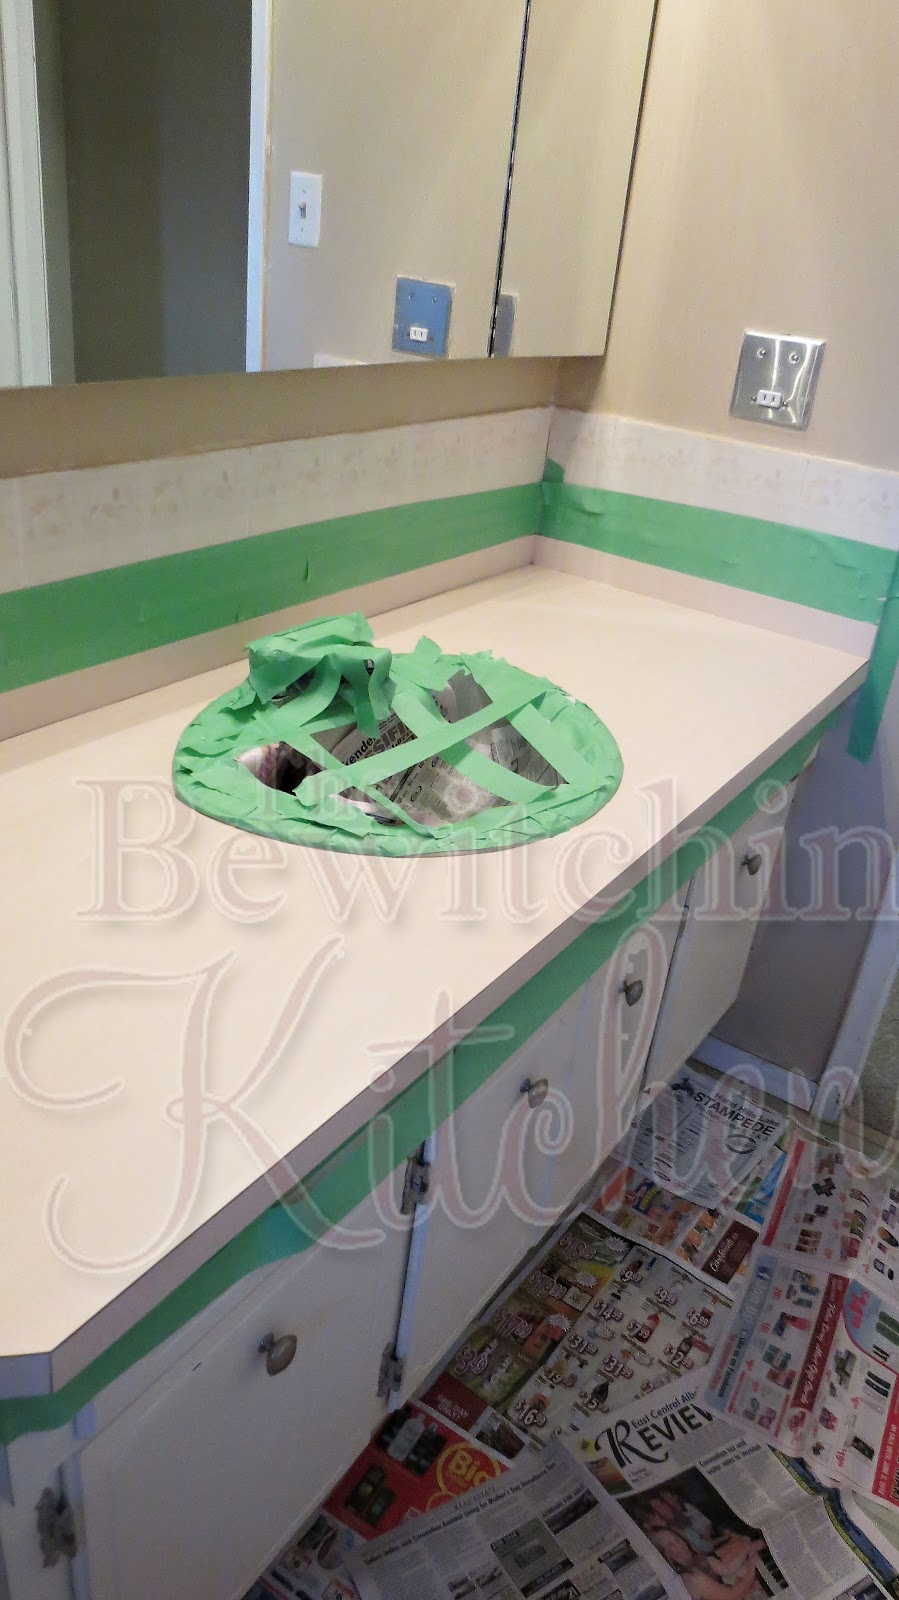 diy bathroom countertops for 25 the bewitchin kitchen